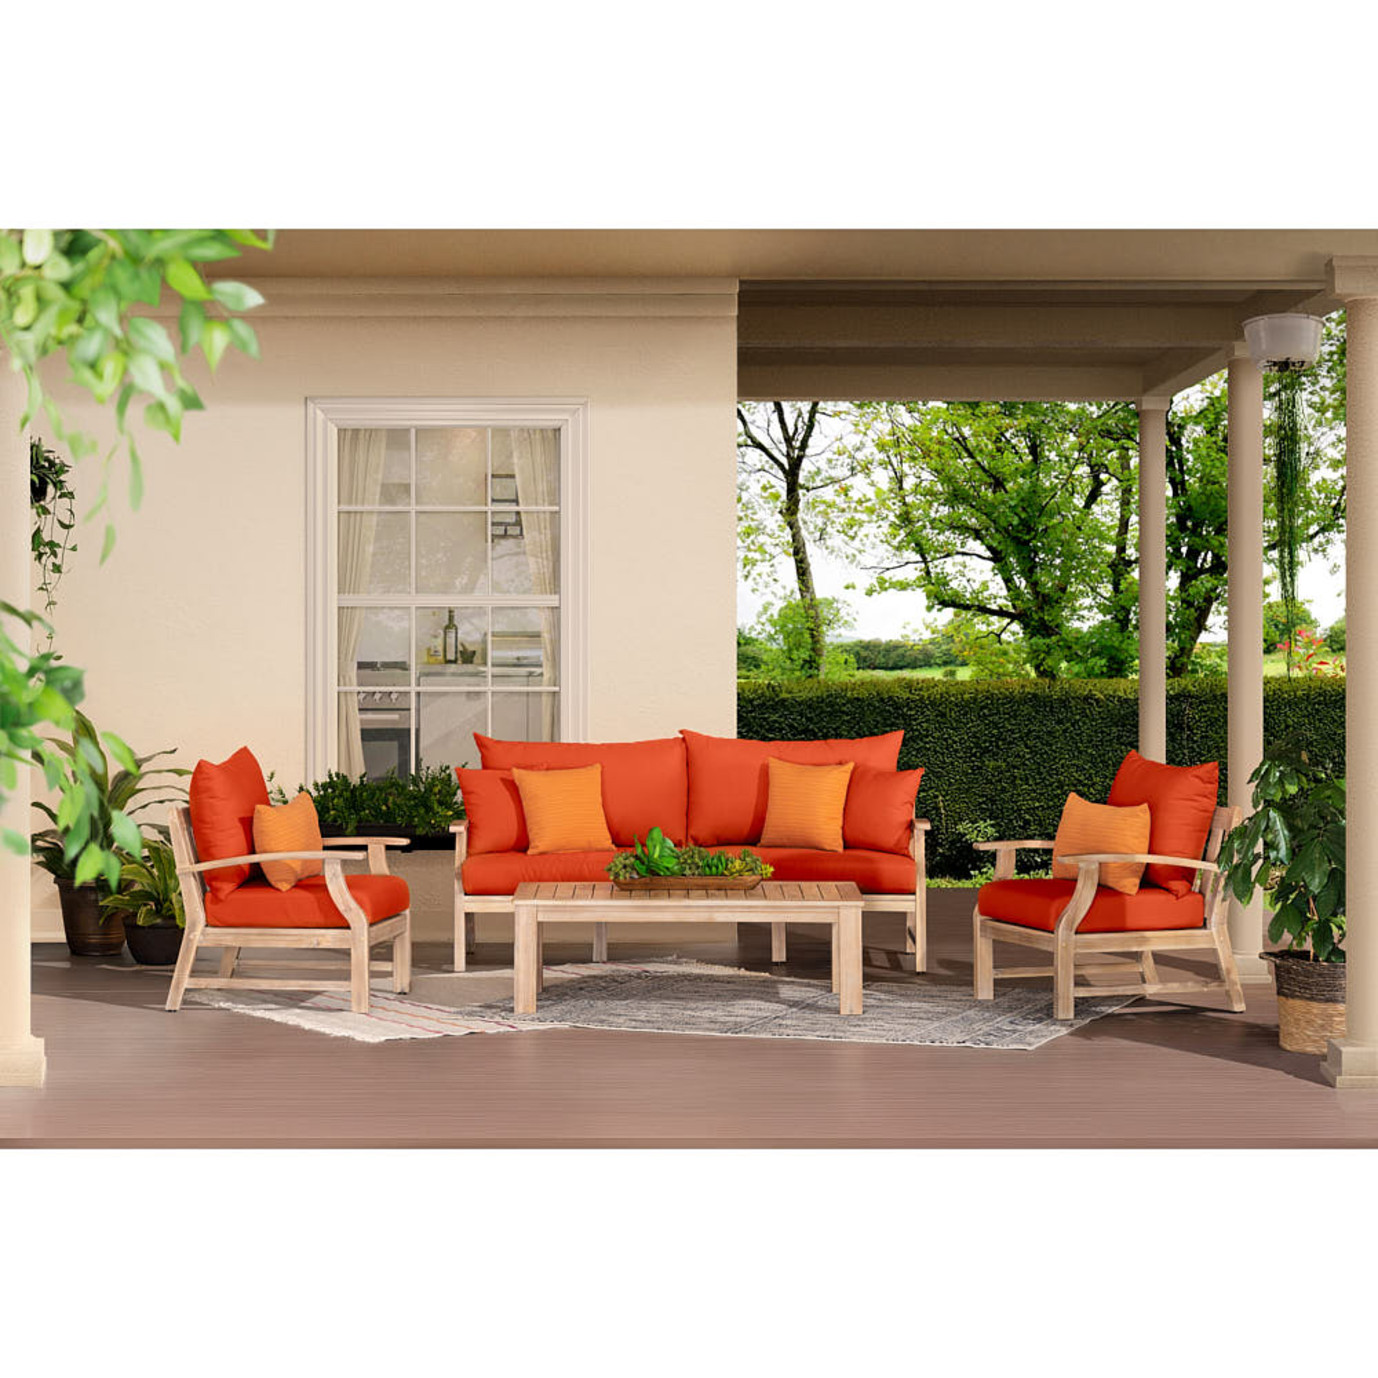 Kooper™ 4 Piece Outdoor Sofa & Club Chair Set - Navy Blue